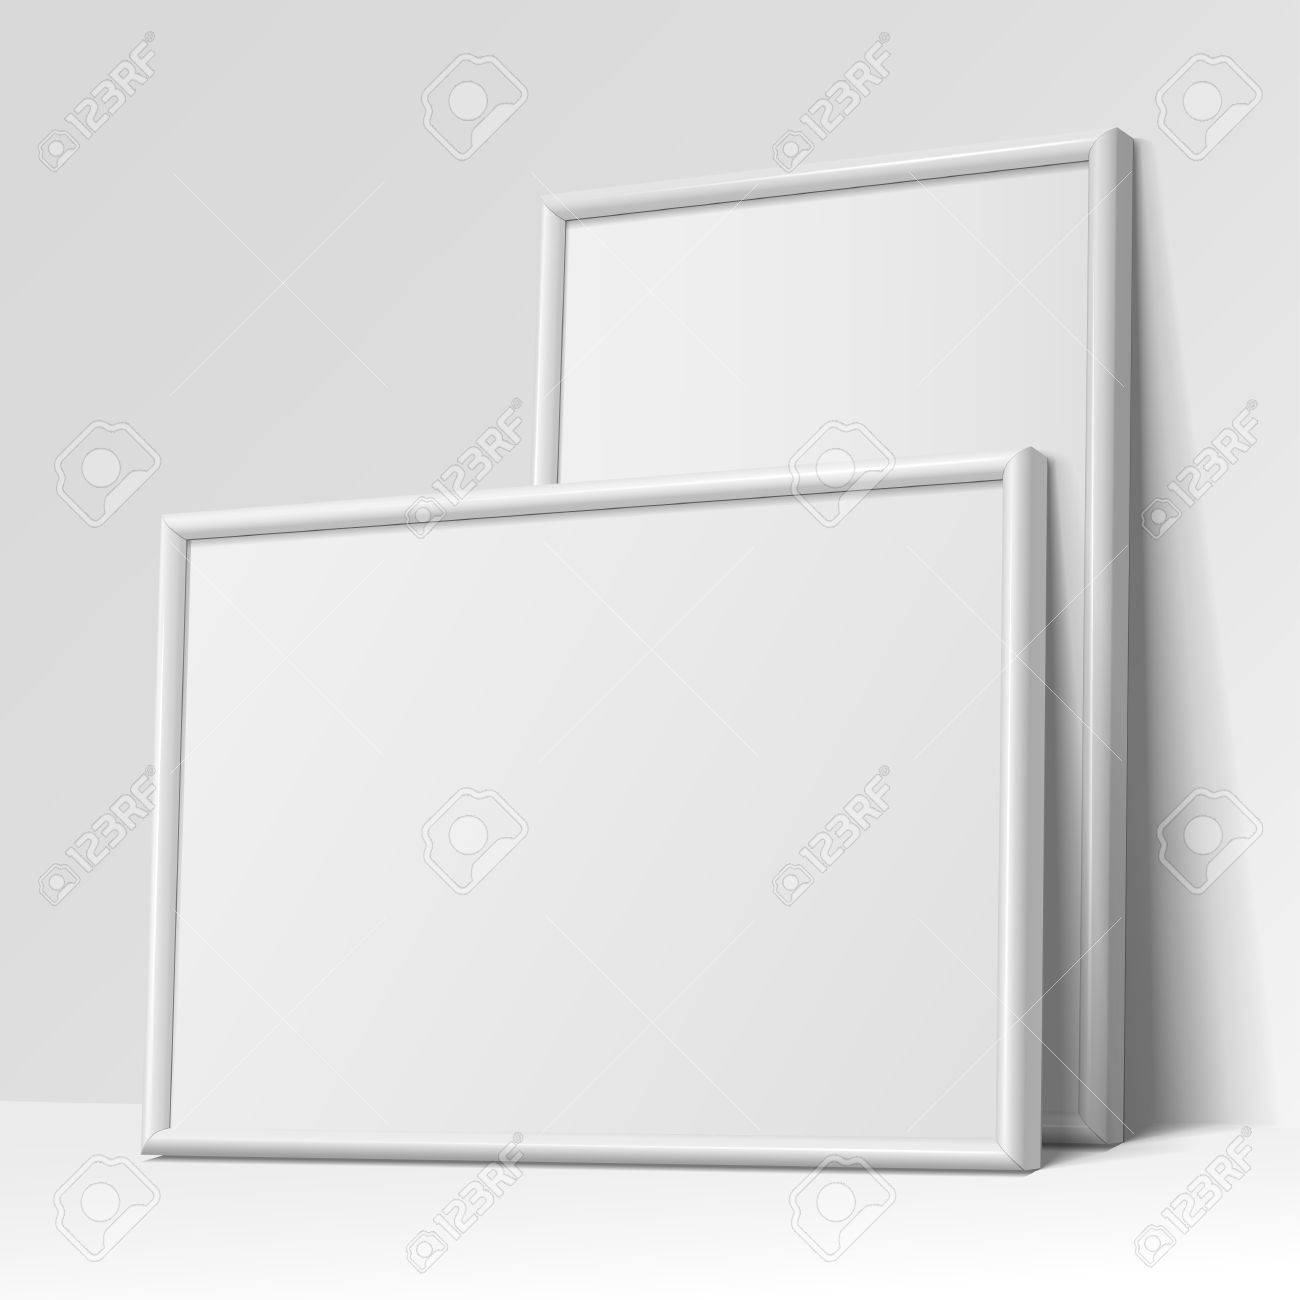 Realistic White Horizontal And Vertical Frame For Paintings Or ...